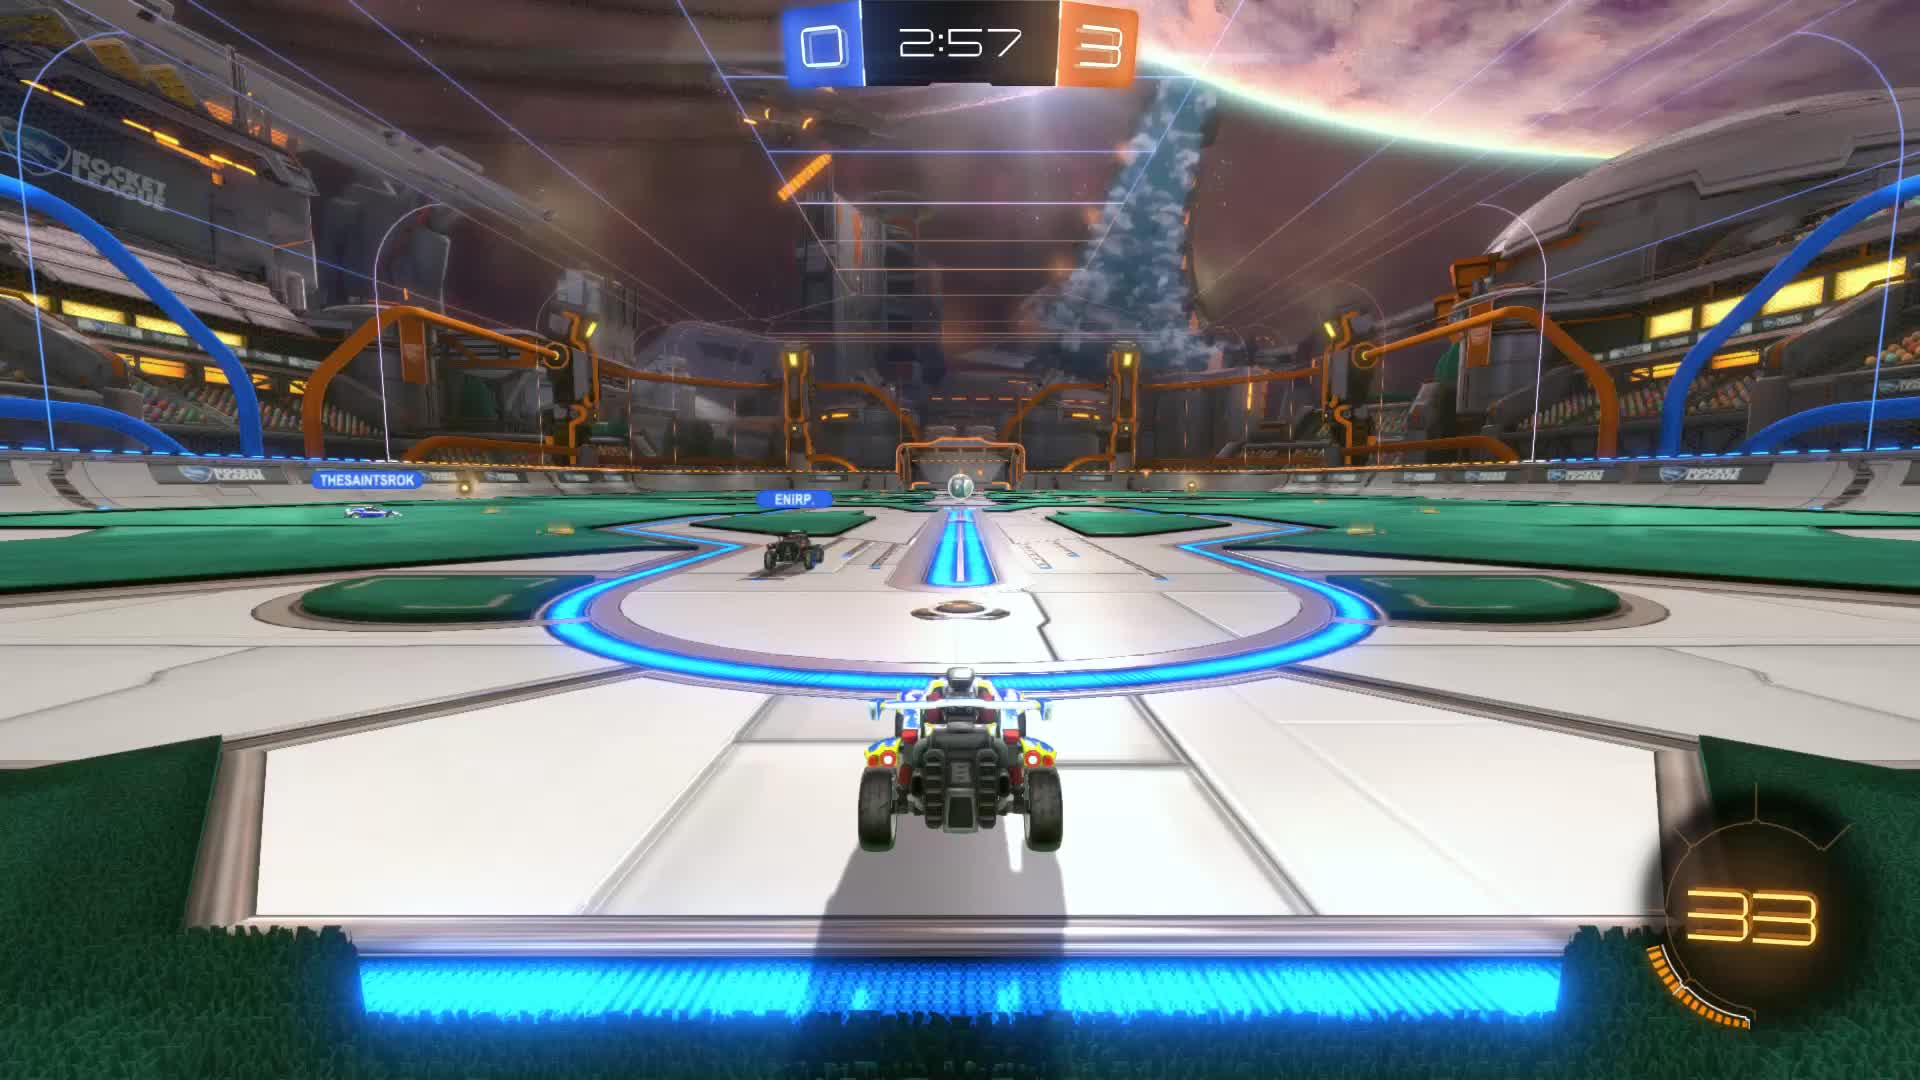 Gif Your Game, GifYourGame, Goal, Rocket League, RocketLeague, XxXxXxXxXxXxXxXxXxX, Goal 4: XxXxXxXxXxXxXxXxXxX GIFs